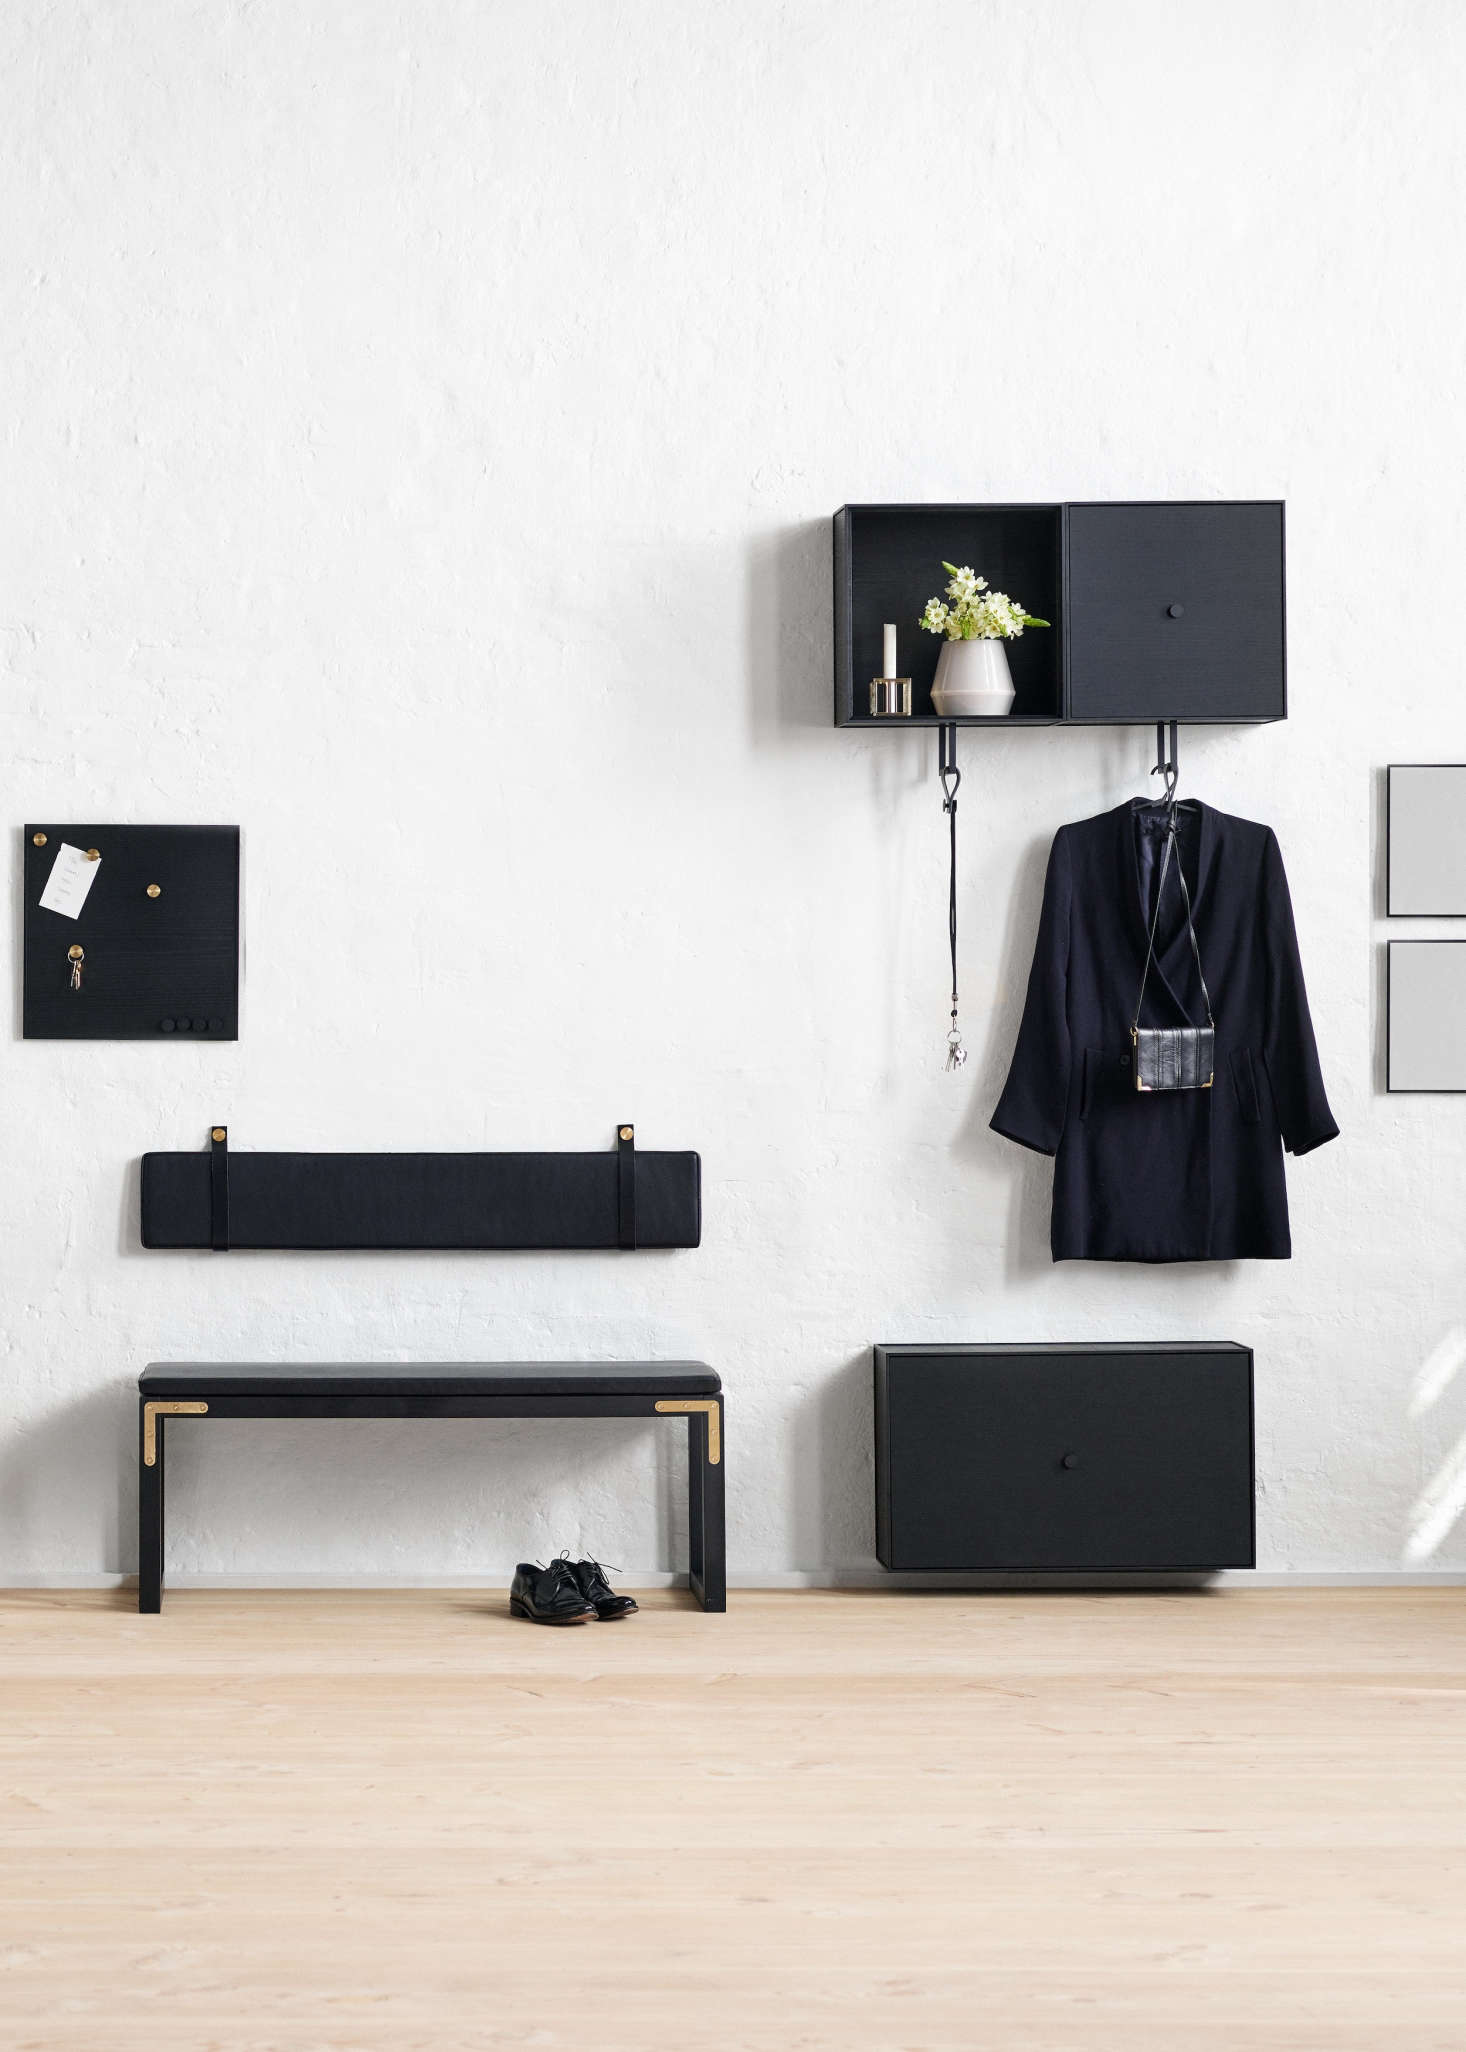 Also pictured are wall-mounted cabinets from the Frame storage lineand a black Remind Message Board.